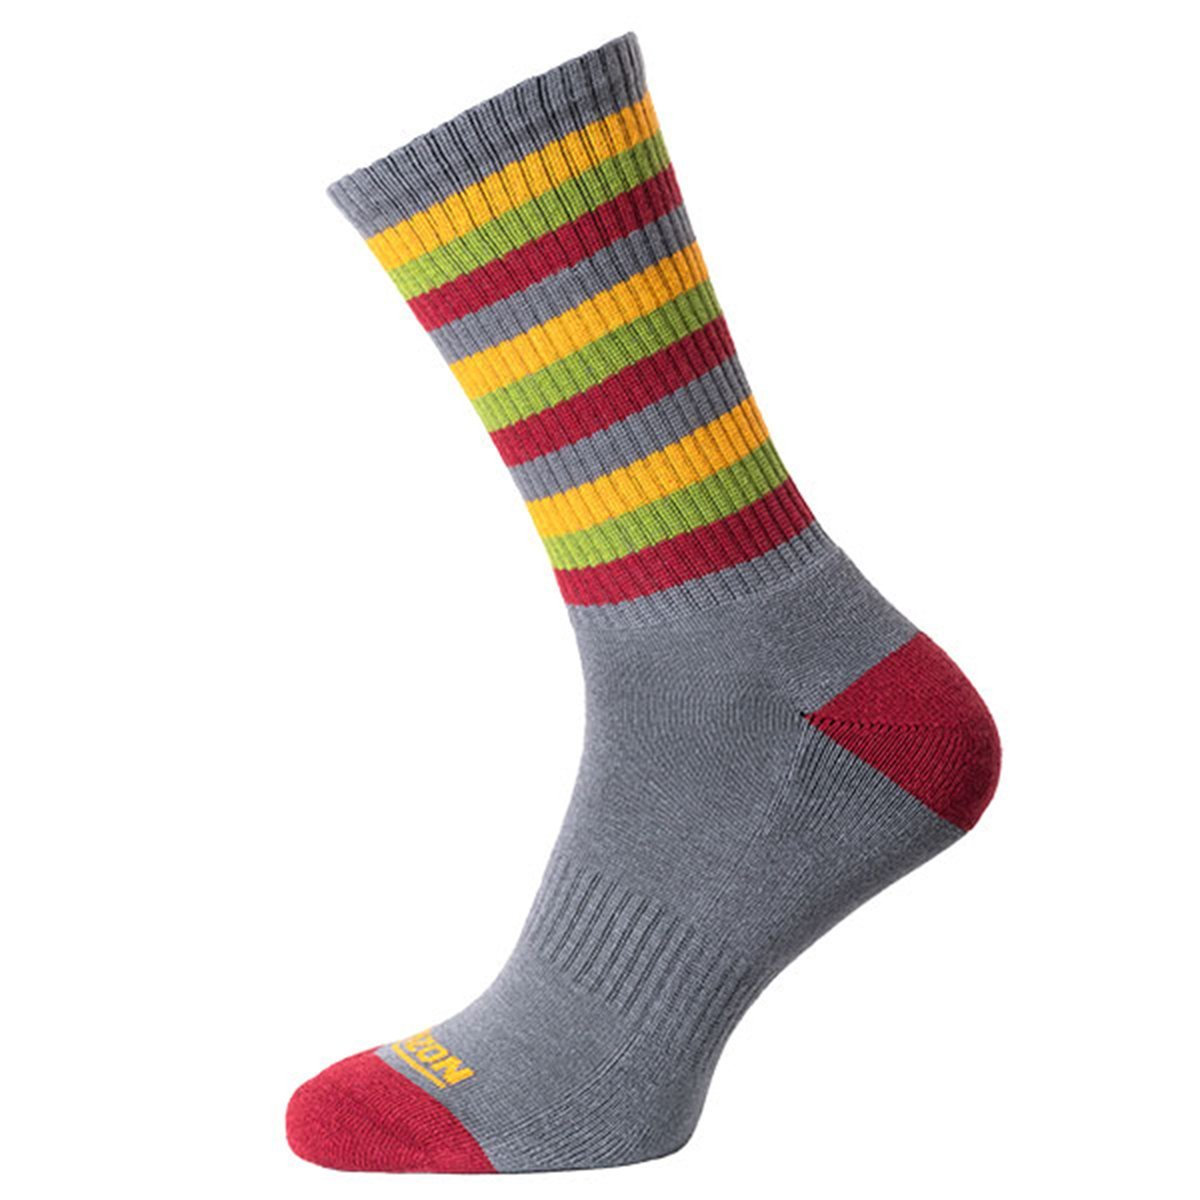 Men's Bamboo/Cotton Socks